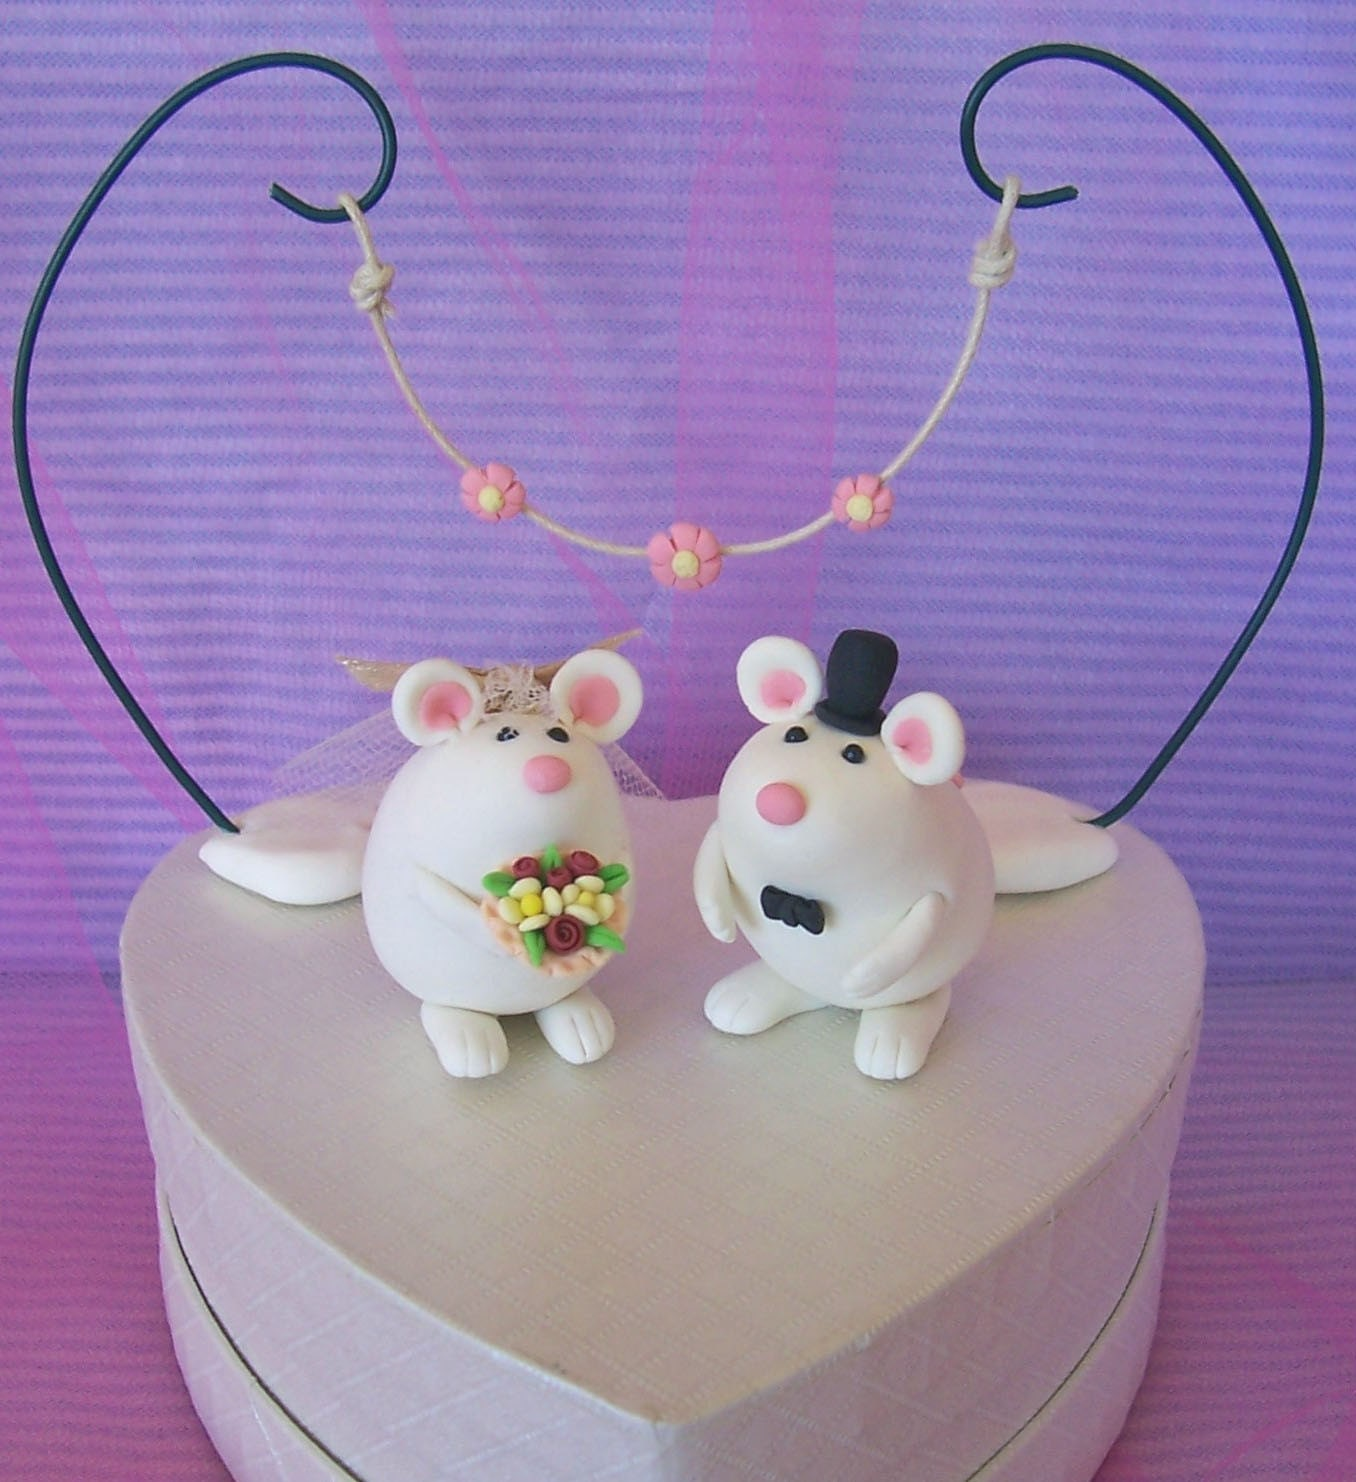 Cute white mice wedding cake toppers customizable by